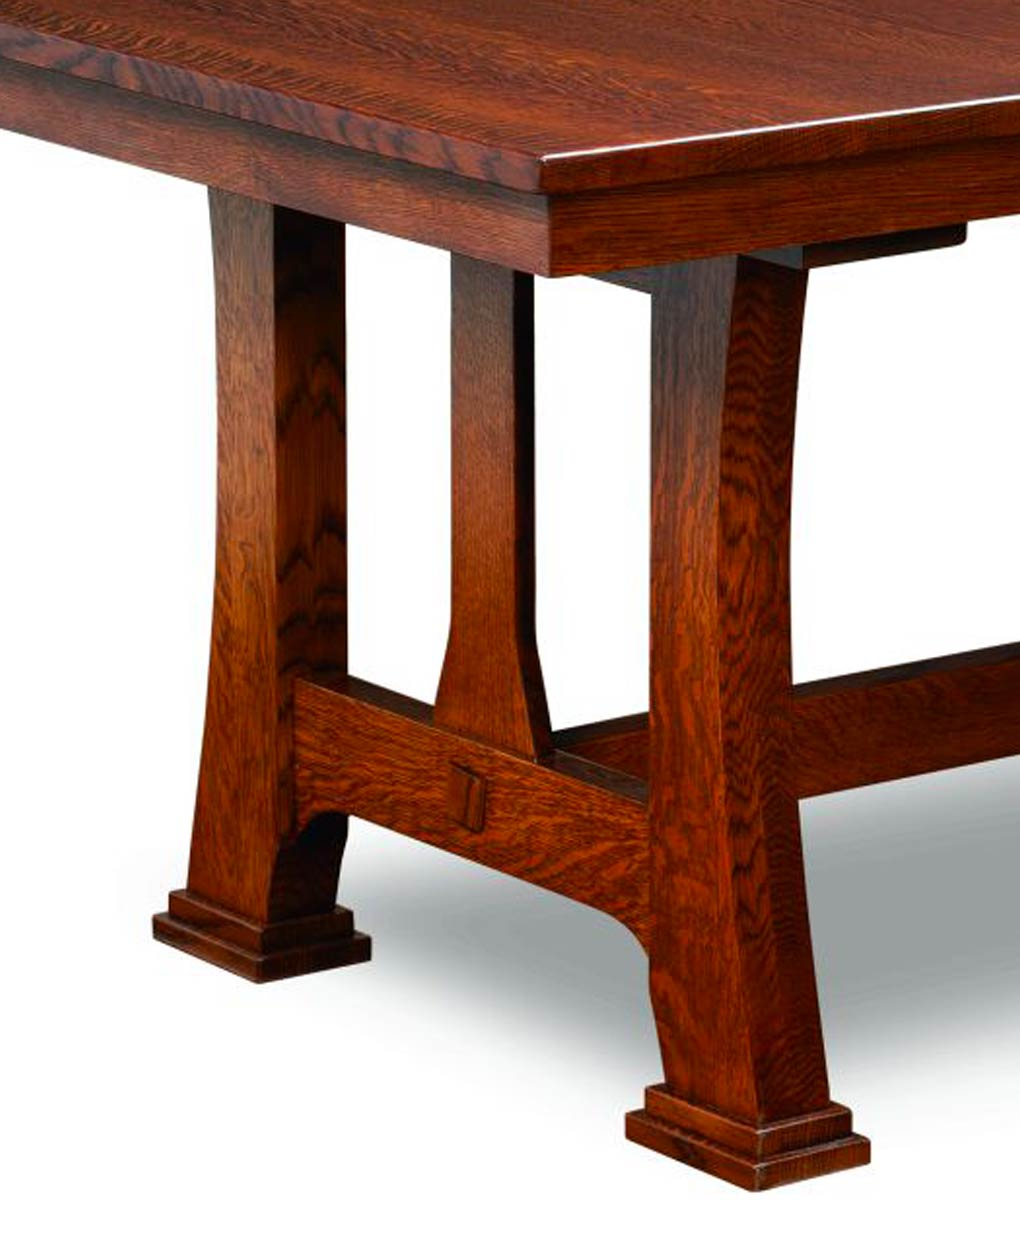 Custer Amish Trestle Dining Table [Base]